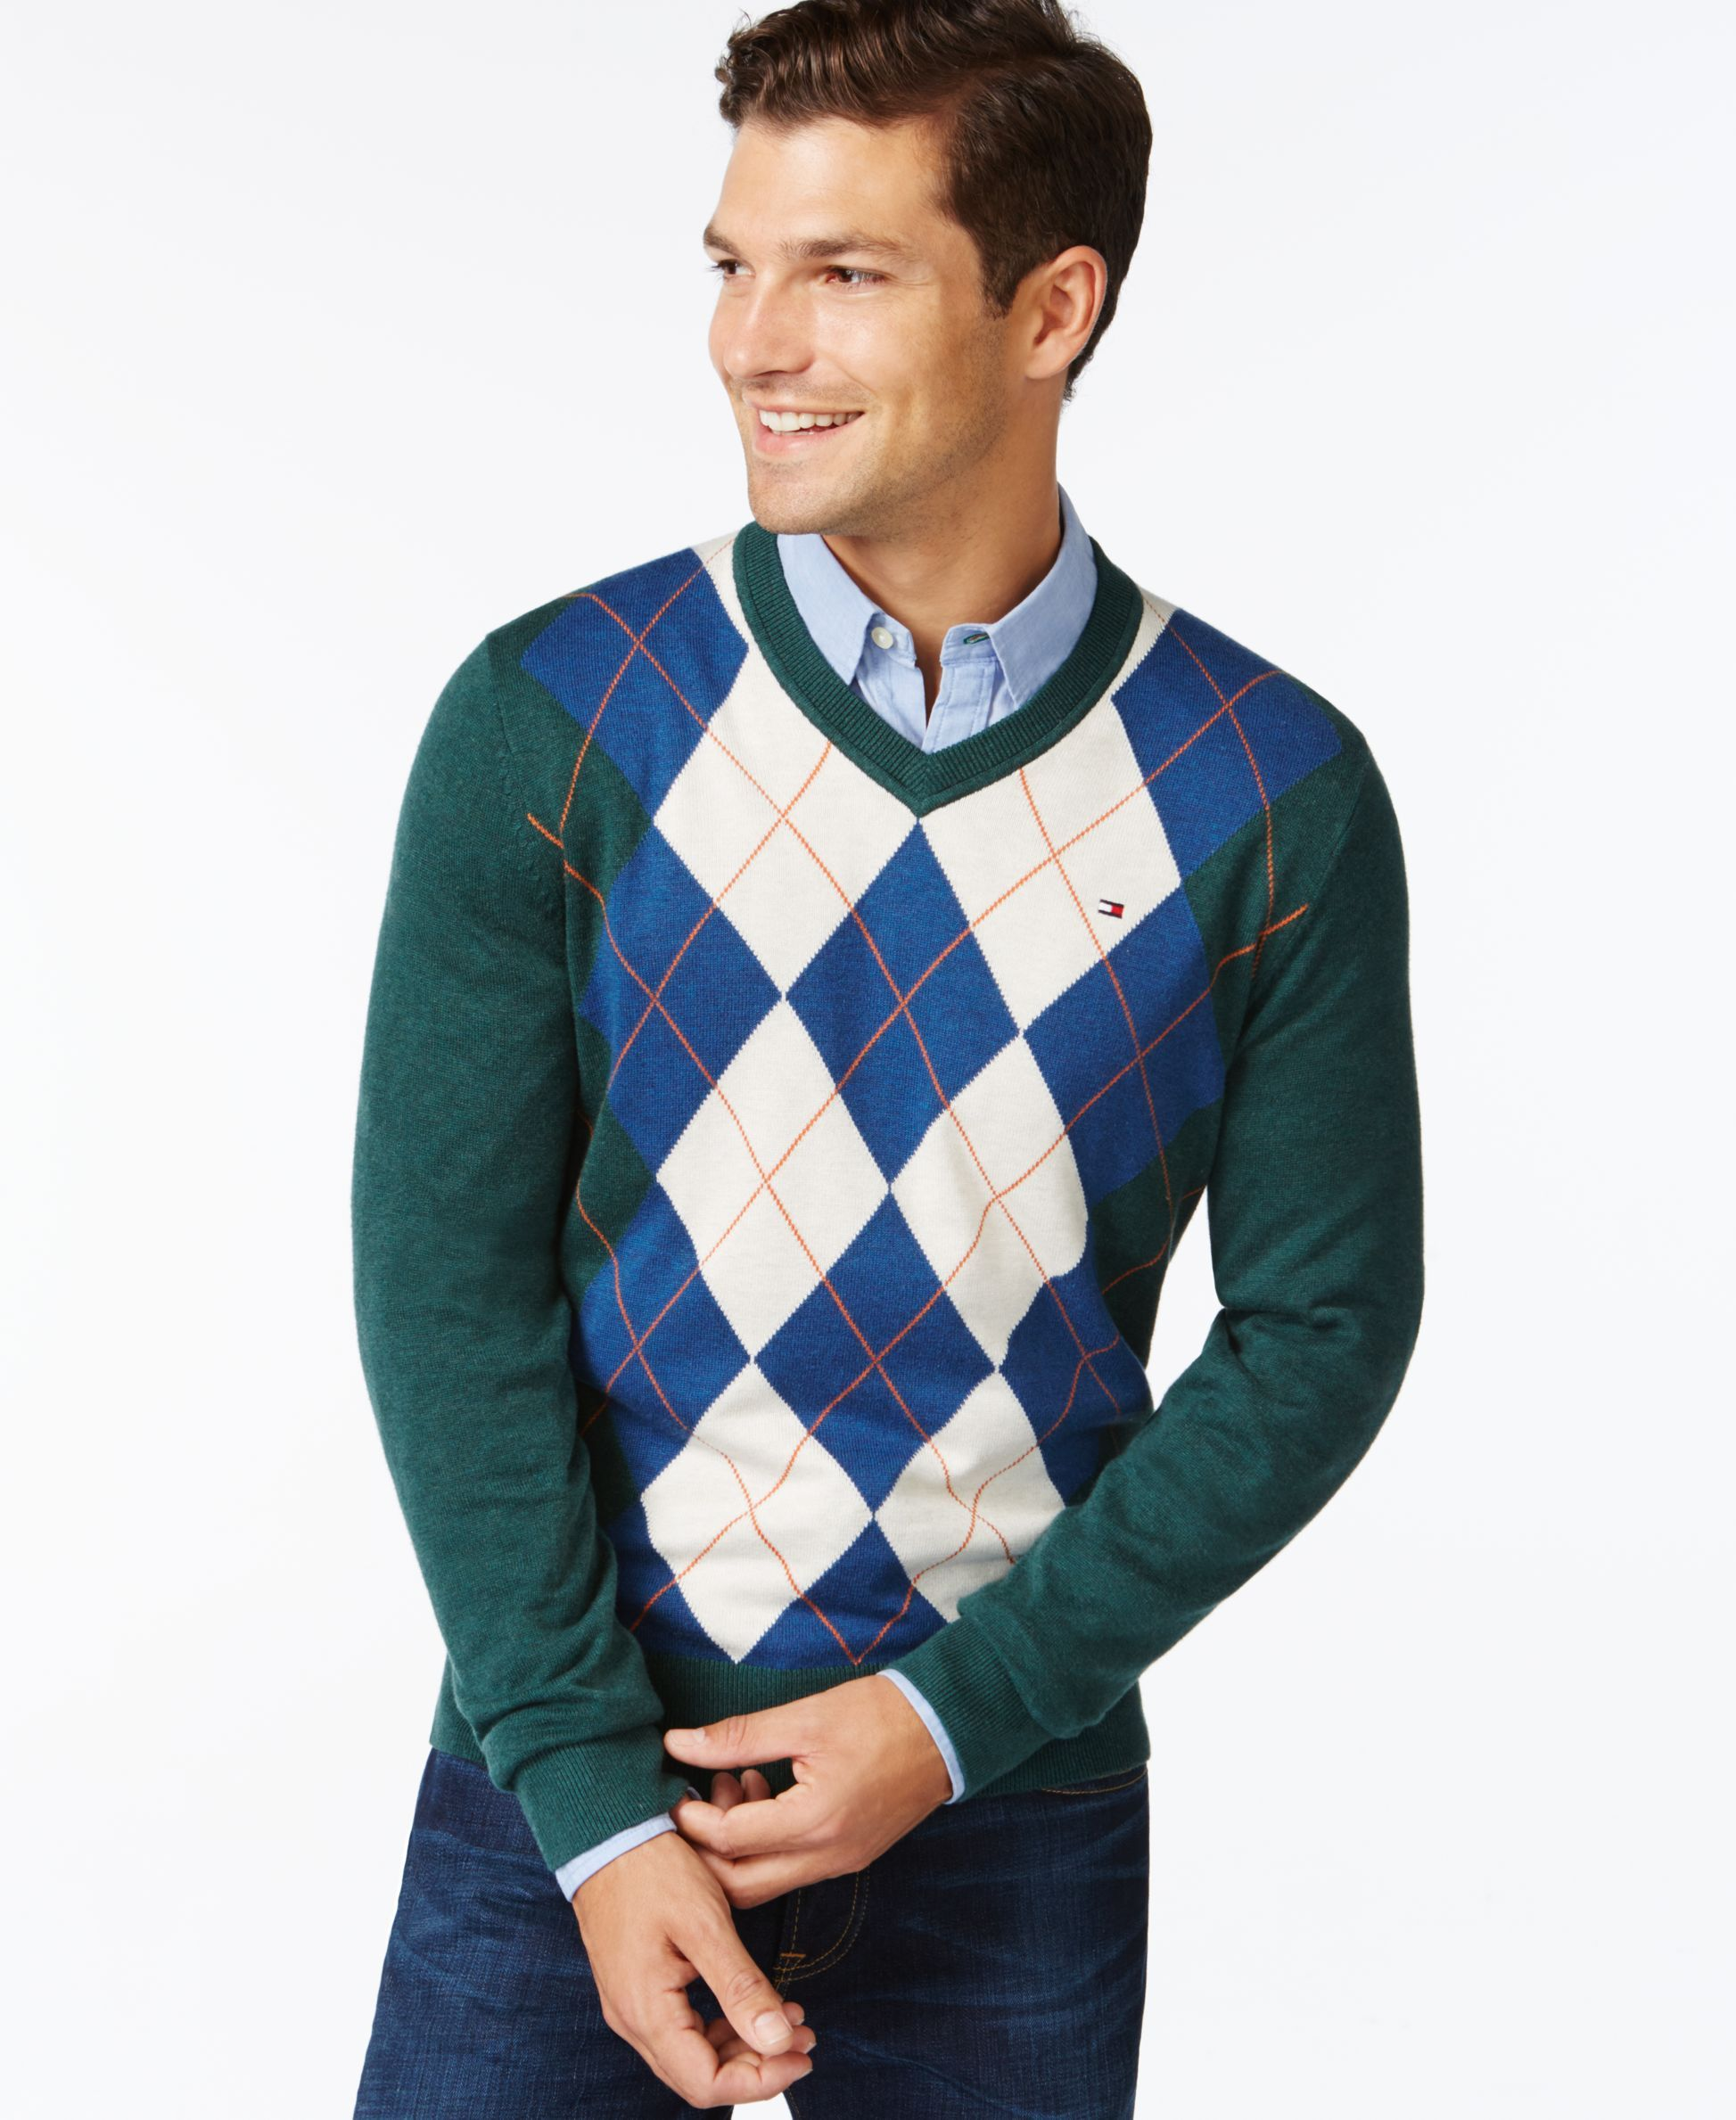 e8118076 Tommy Hilfiger Signature Argyle V-Neck Sweater | Anonymously Good ...